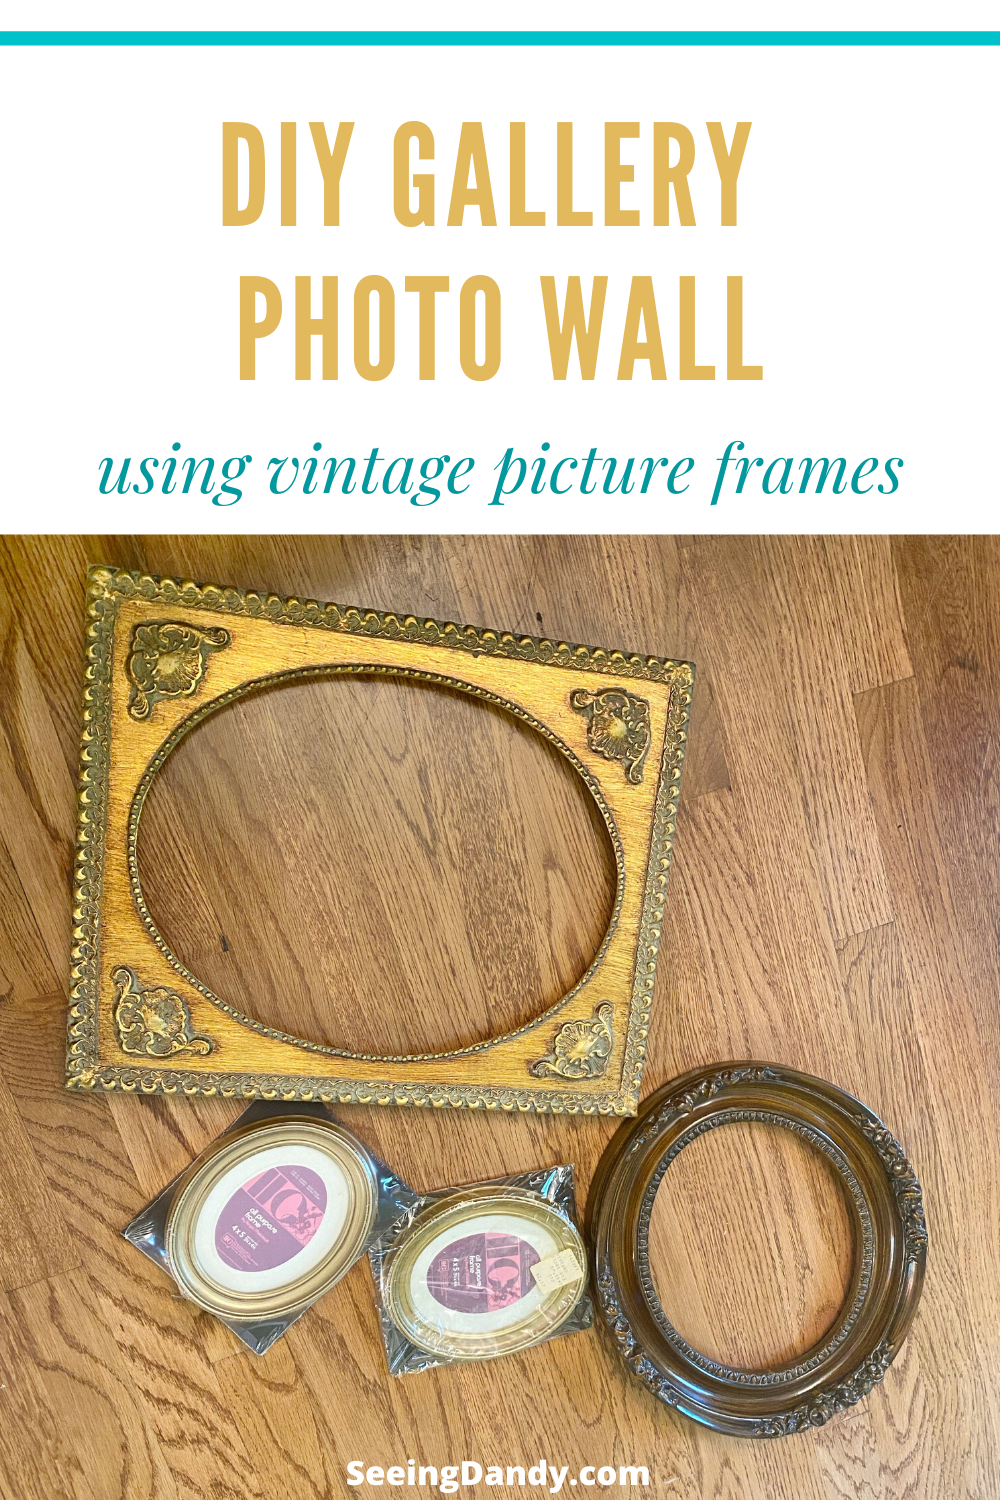 diy gallery photo wall vintage picture frames